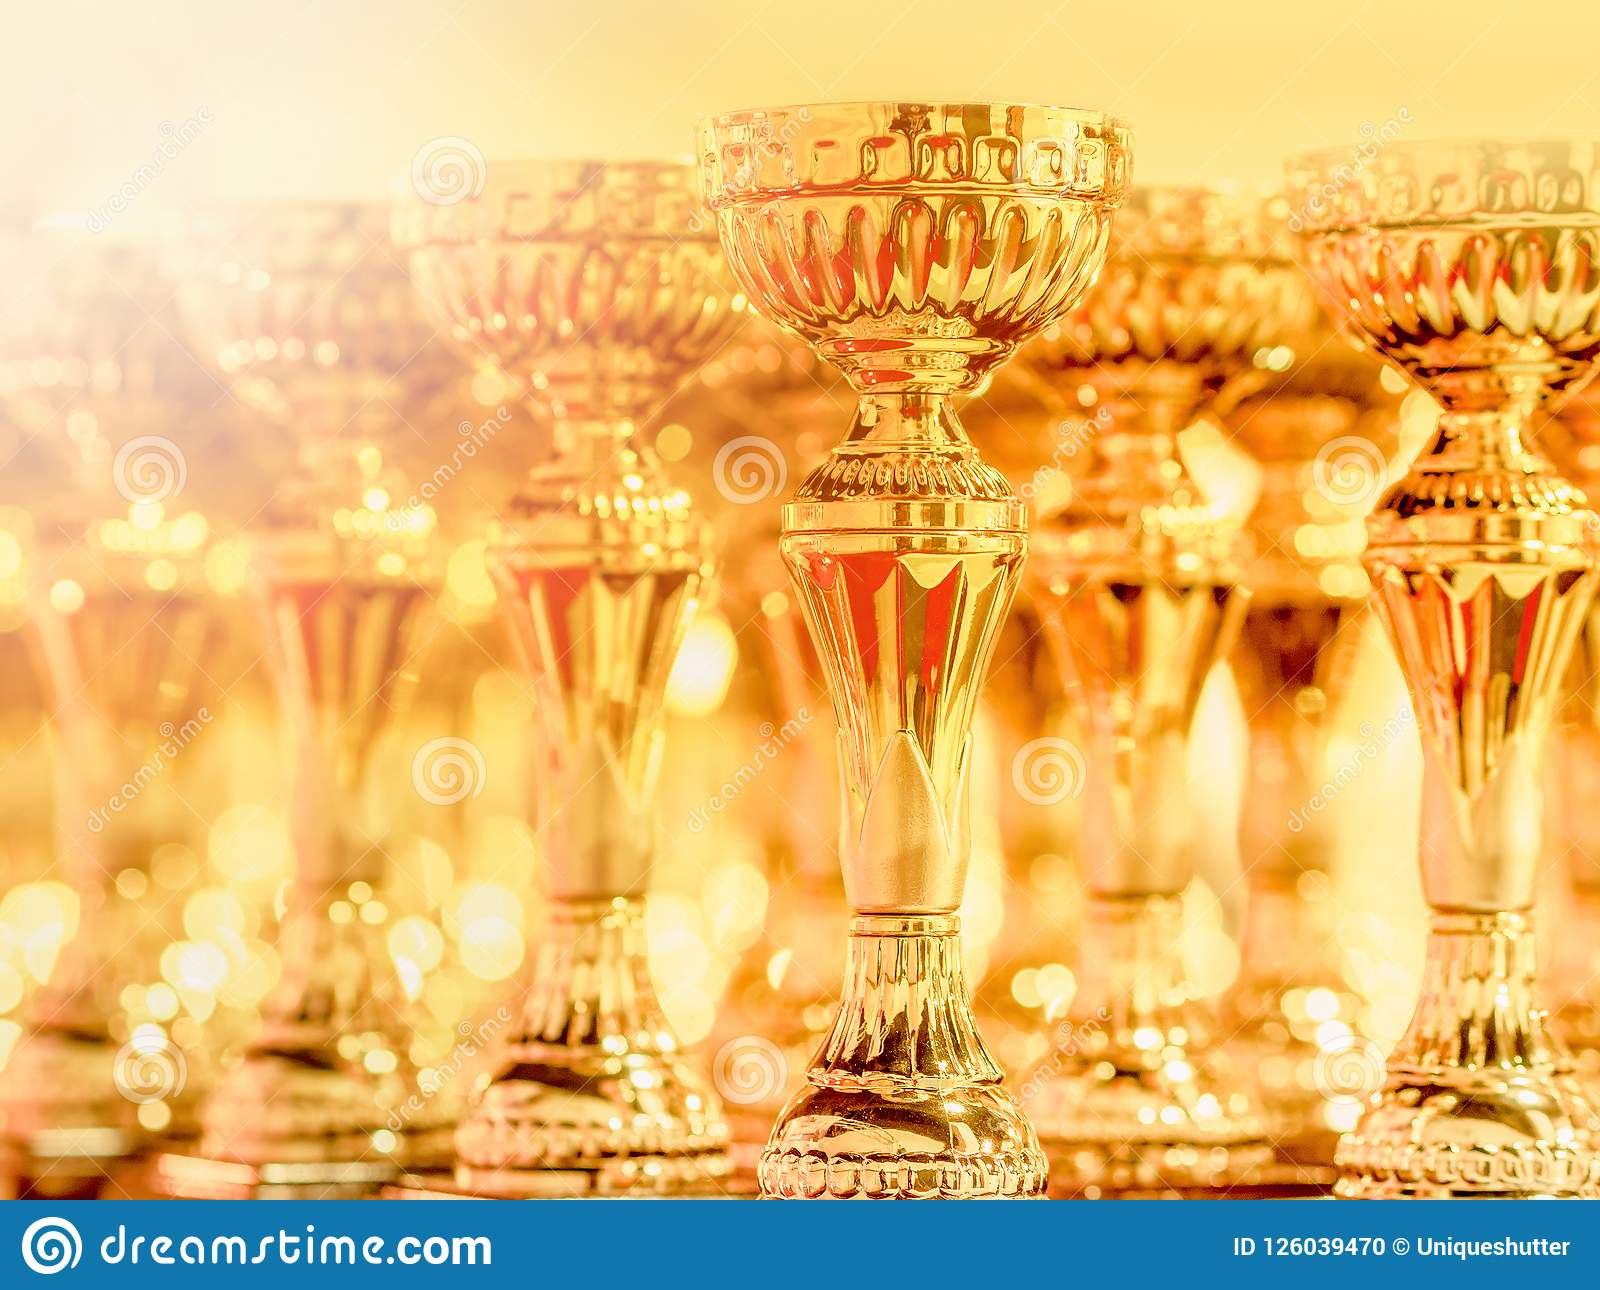 The shining trophy is the honor of the winner, Shiny Golden throphy line-up on table